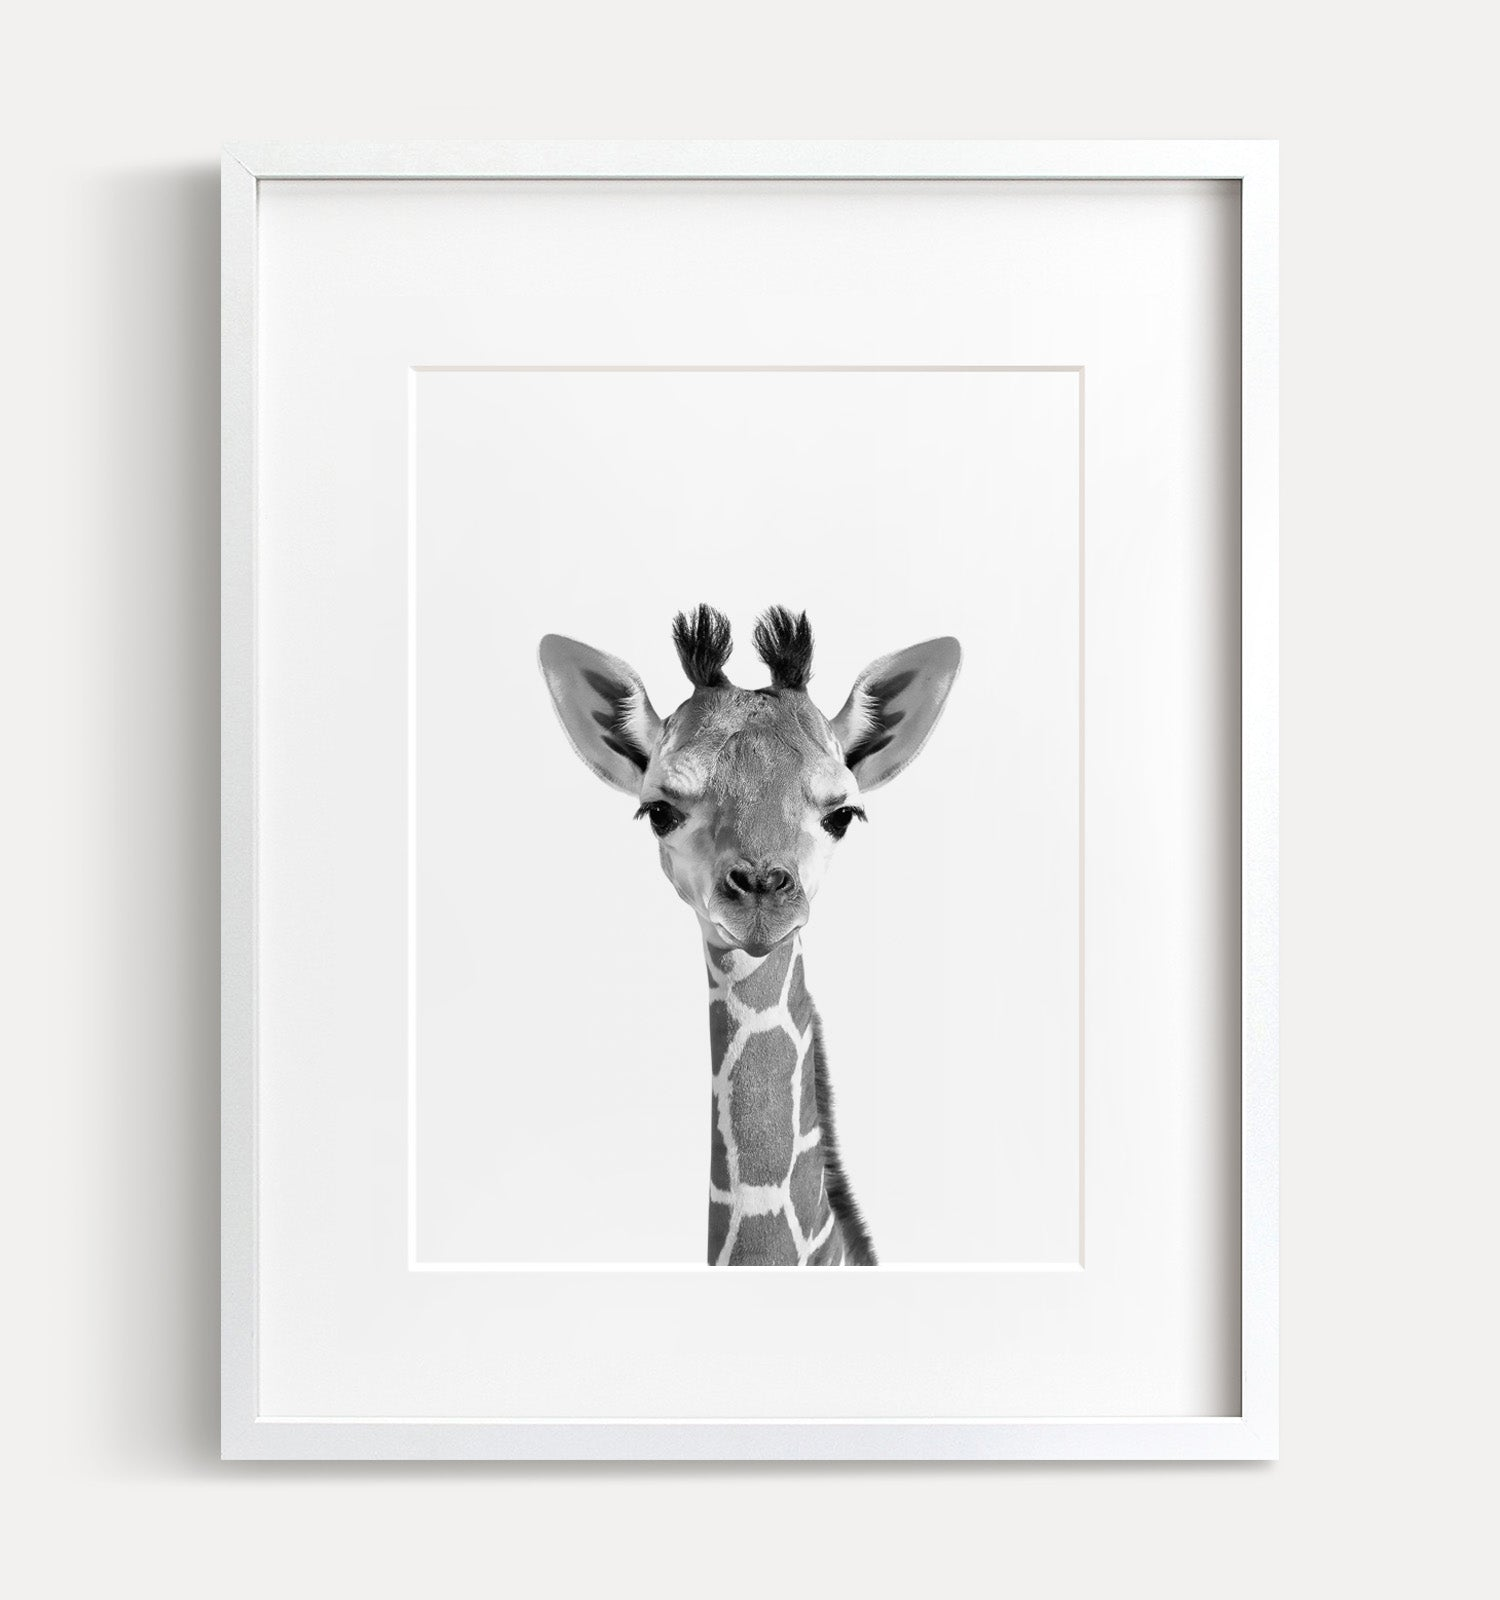 picture relating to Black and White Printable named Kid Giraffe Black and White Printable Artwork